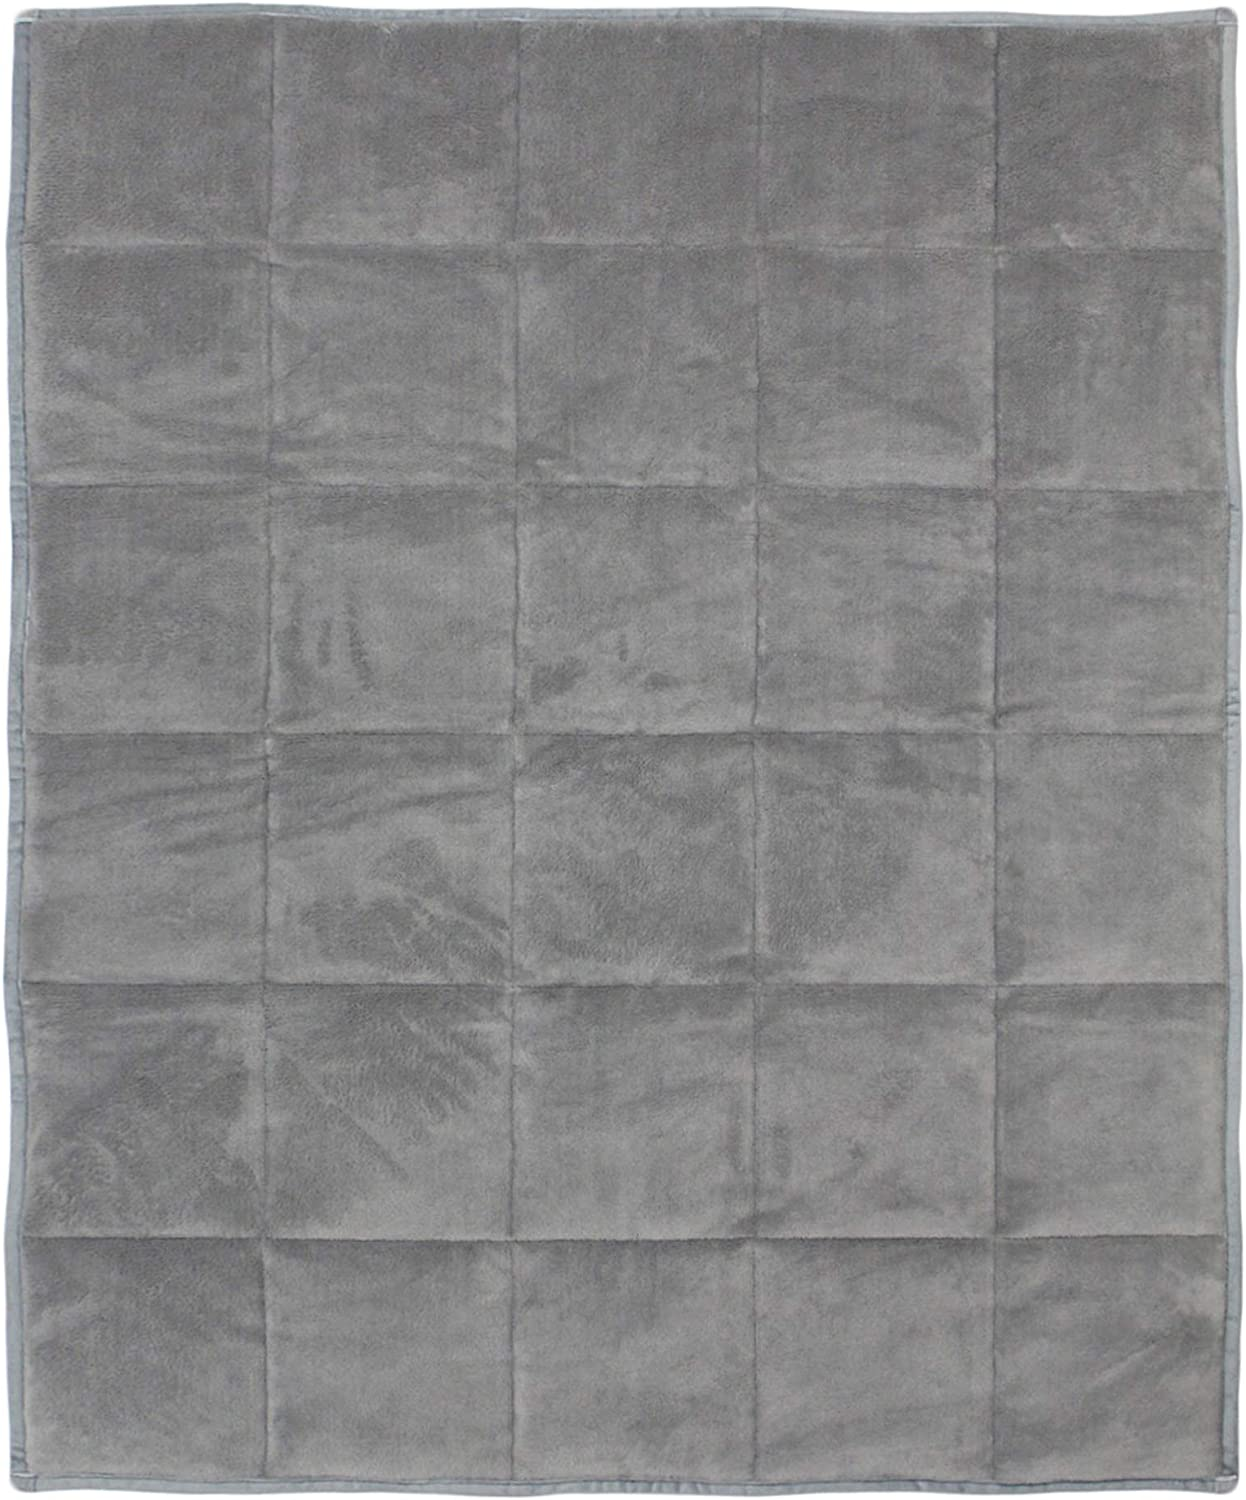 Snuggly Soft Feeling. Franco Manufacturing Weighted Plush Blanket This Blanket Weighs 4.5 lbs and is Weighted for a Safe